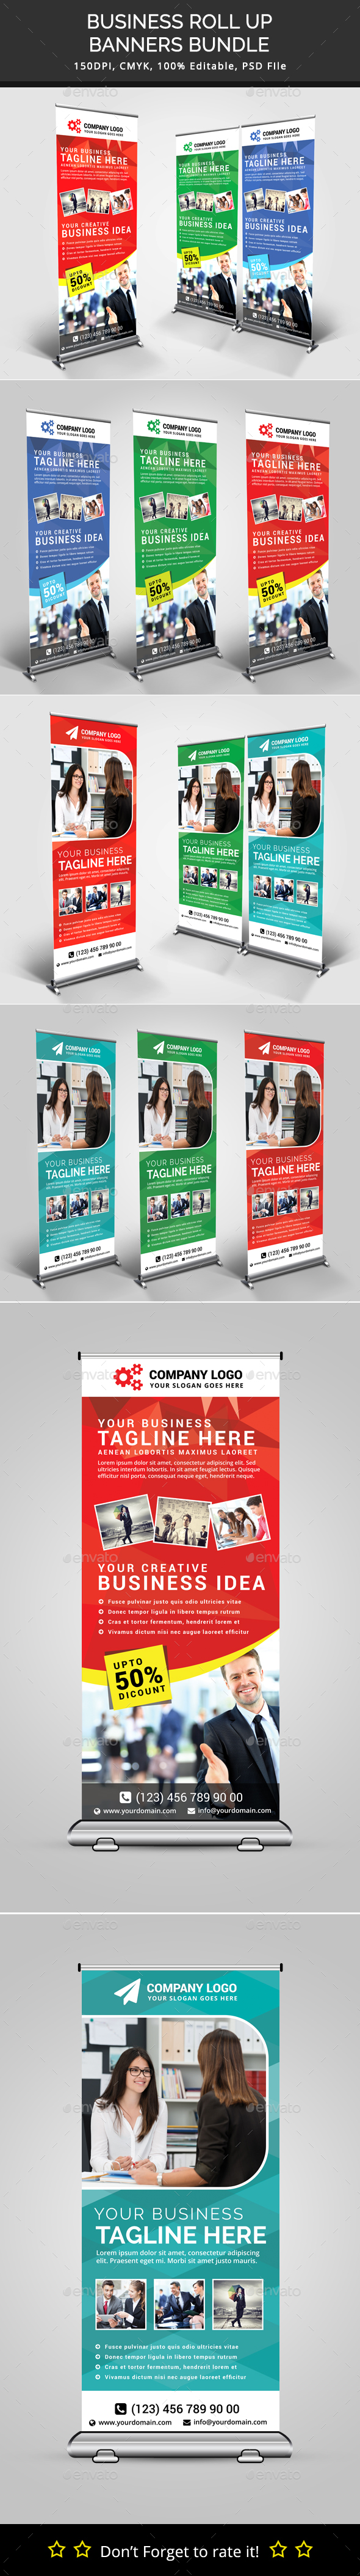 Bundle of 2 Multi Business Rollup Banners - Signage Print Templates